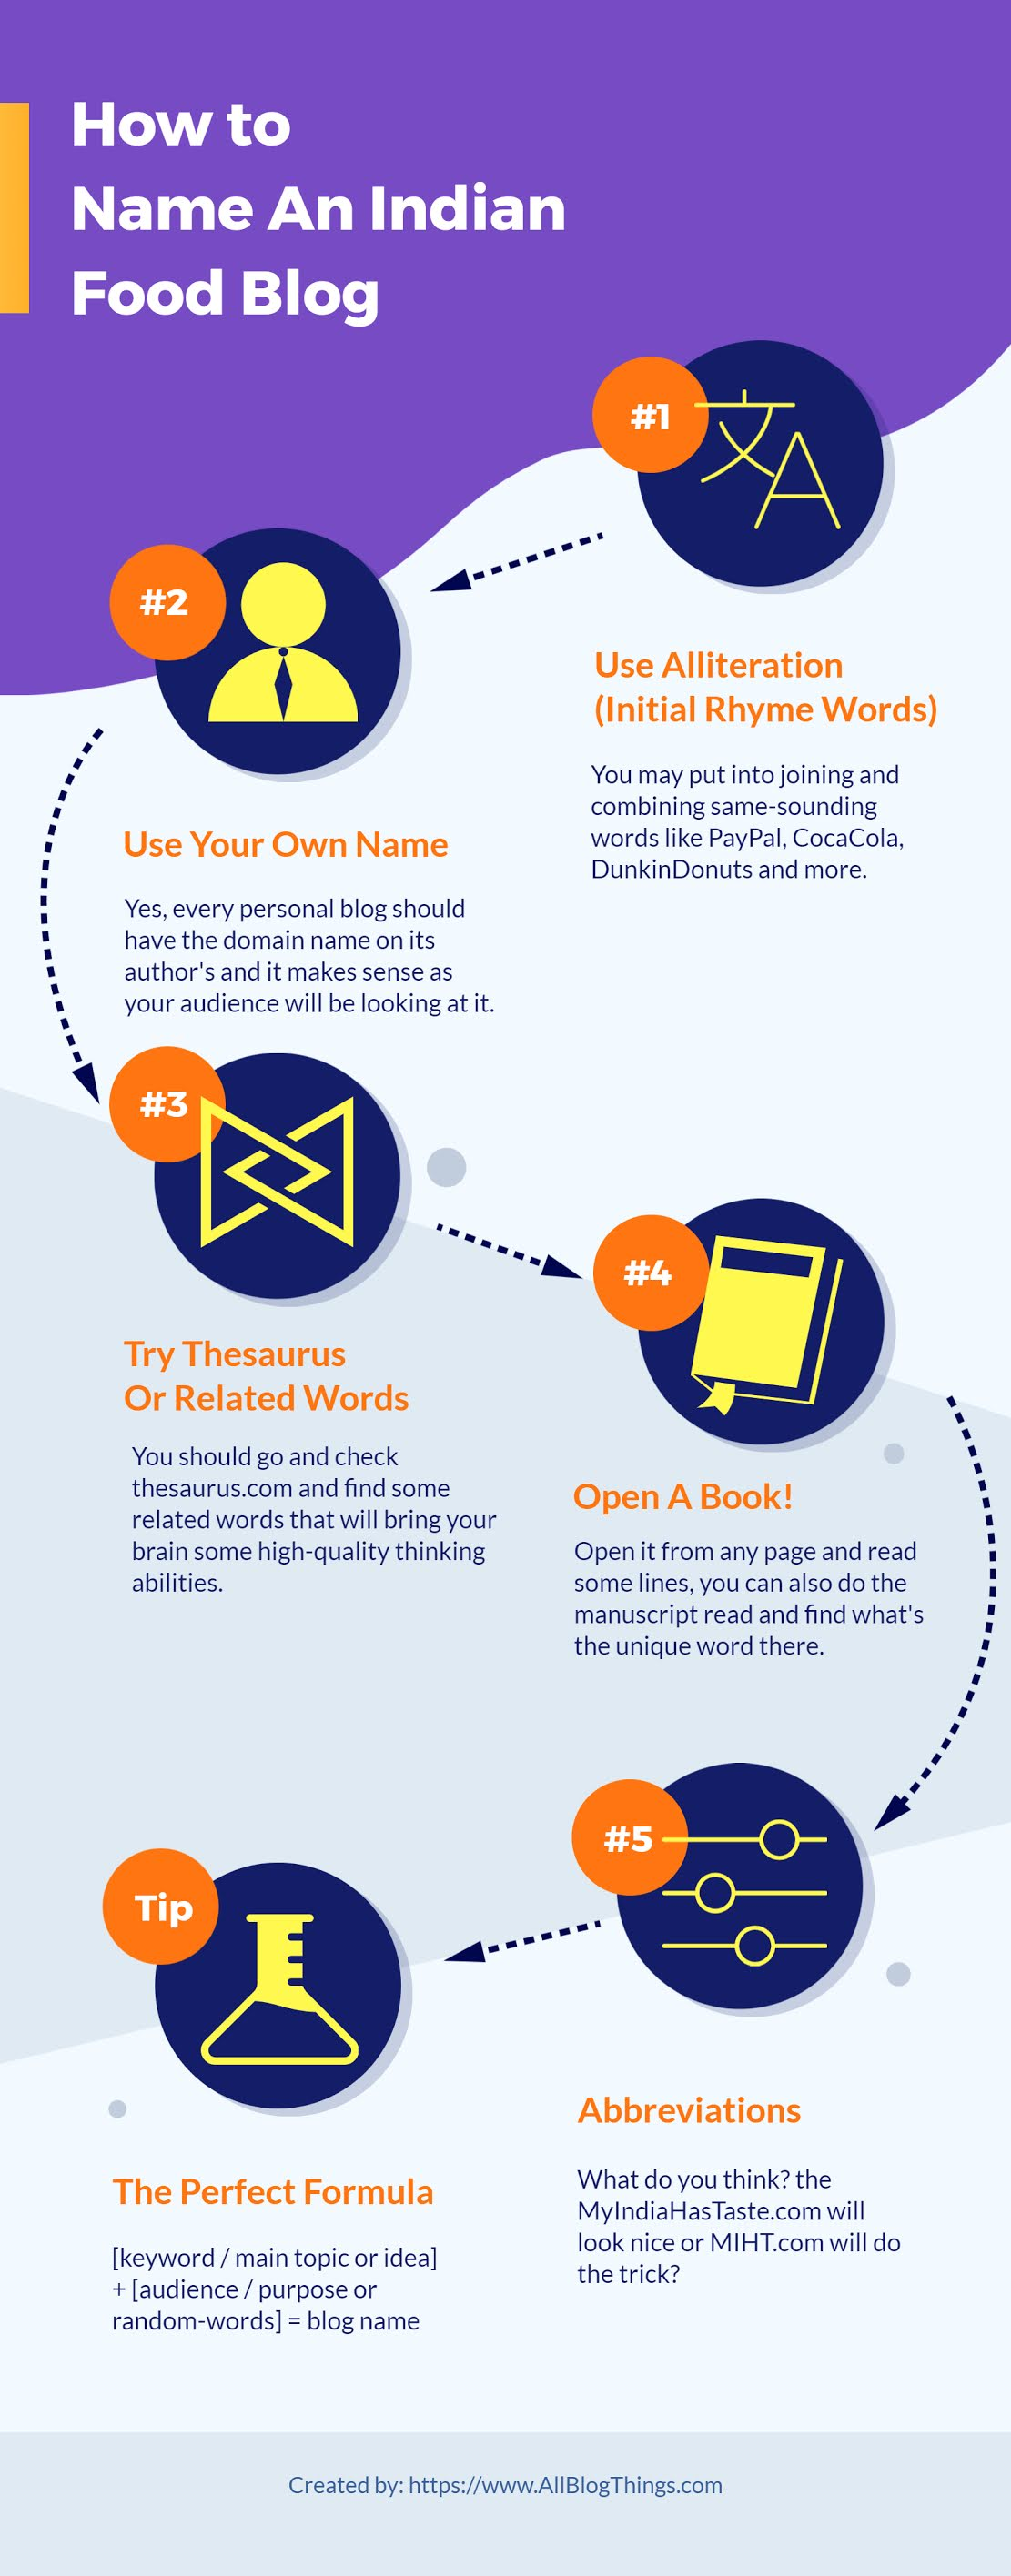 How to name an indian food blog (infographic guide)